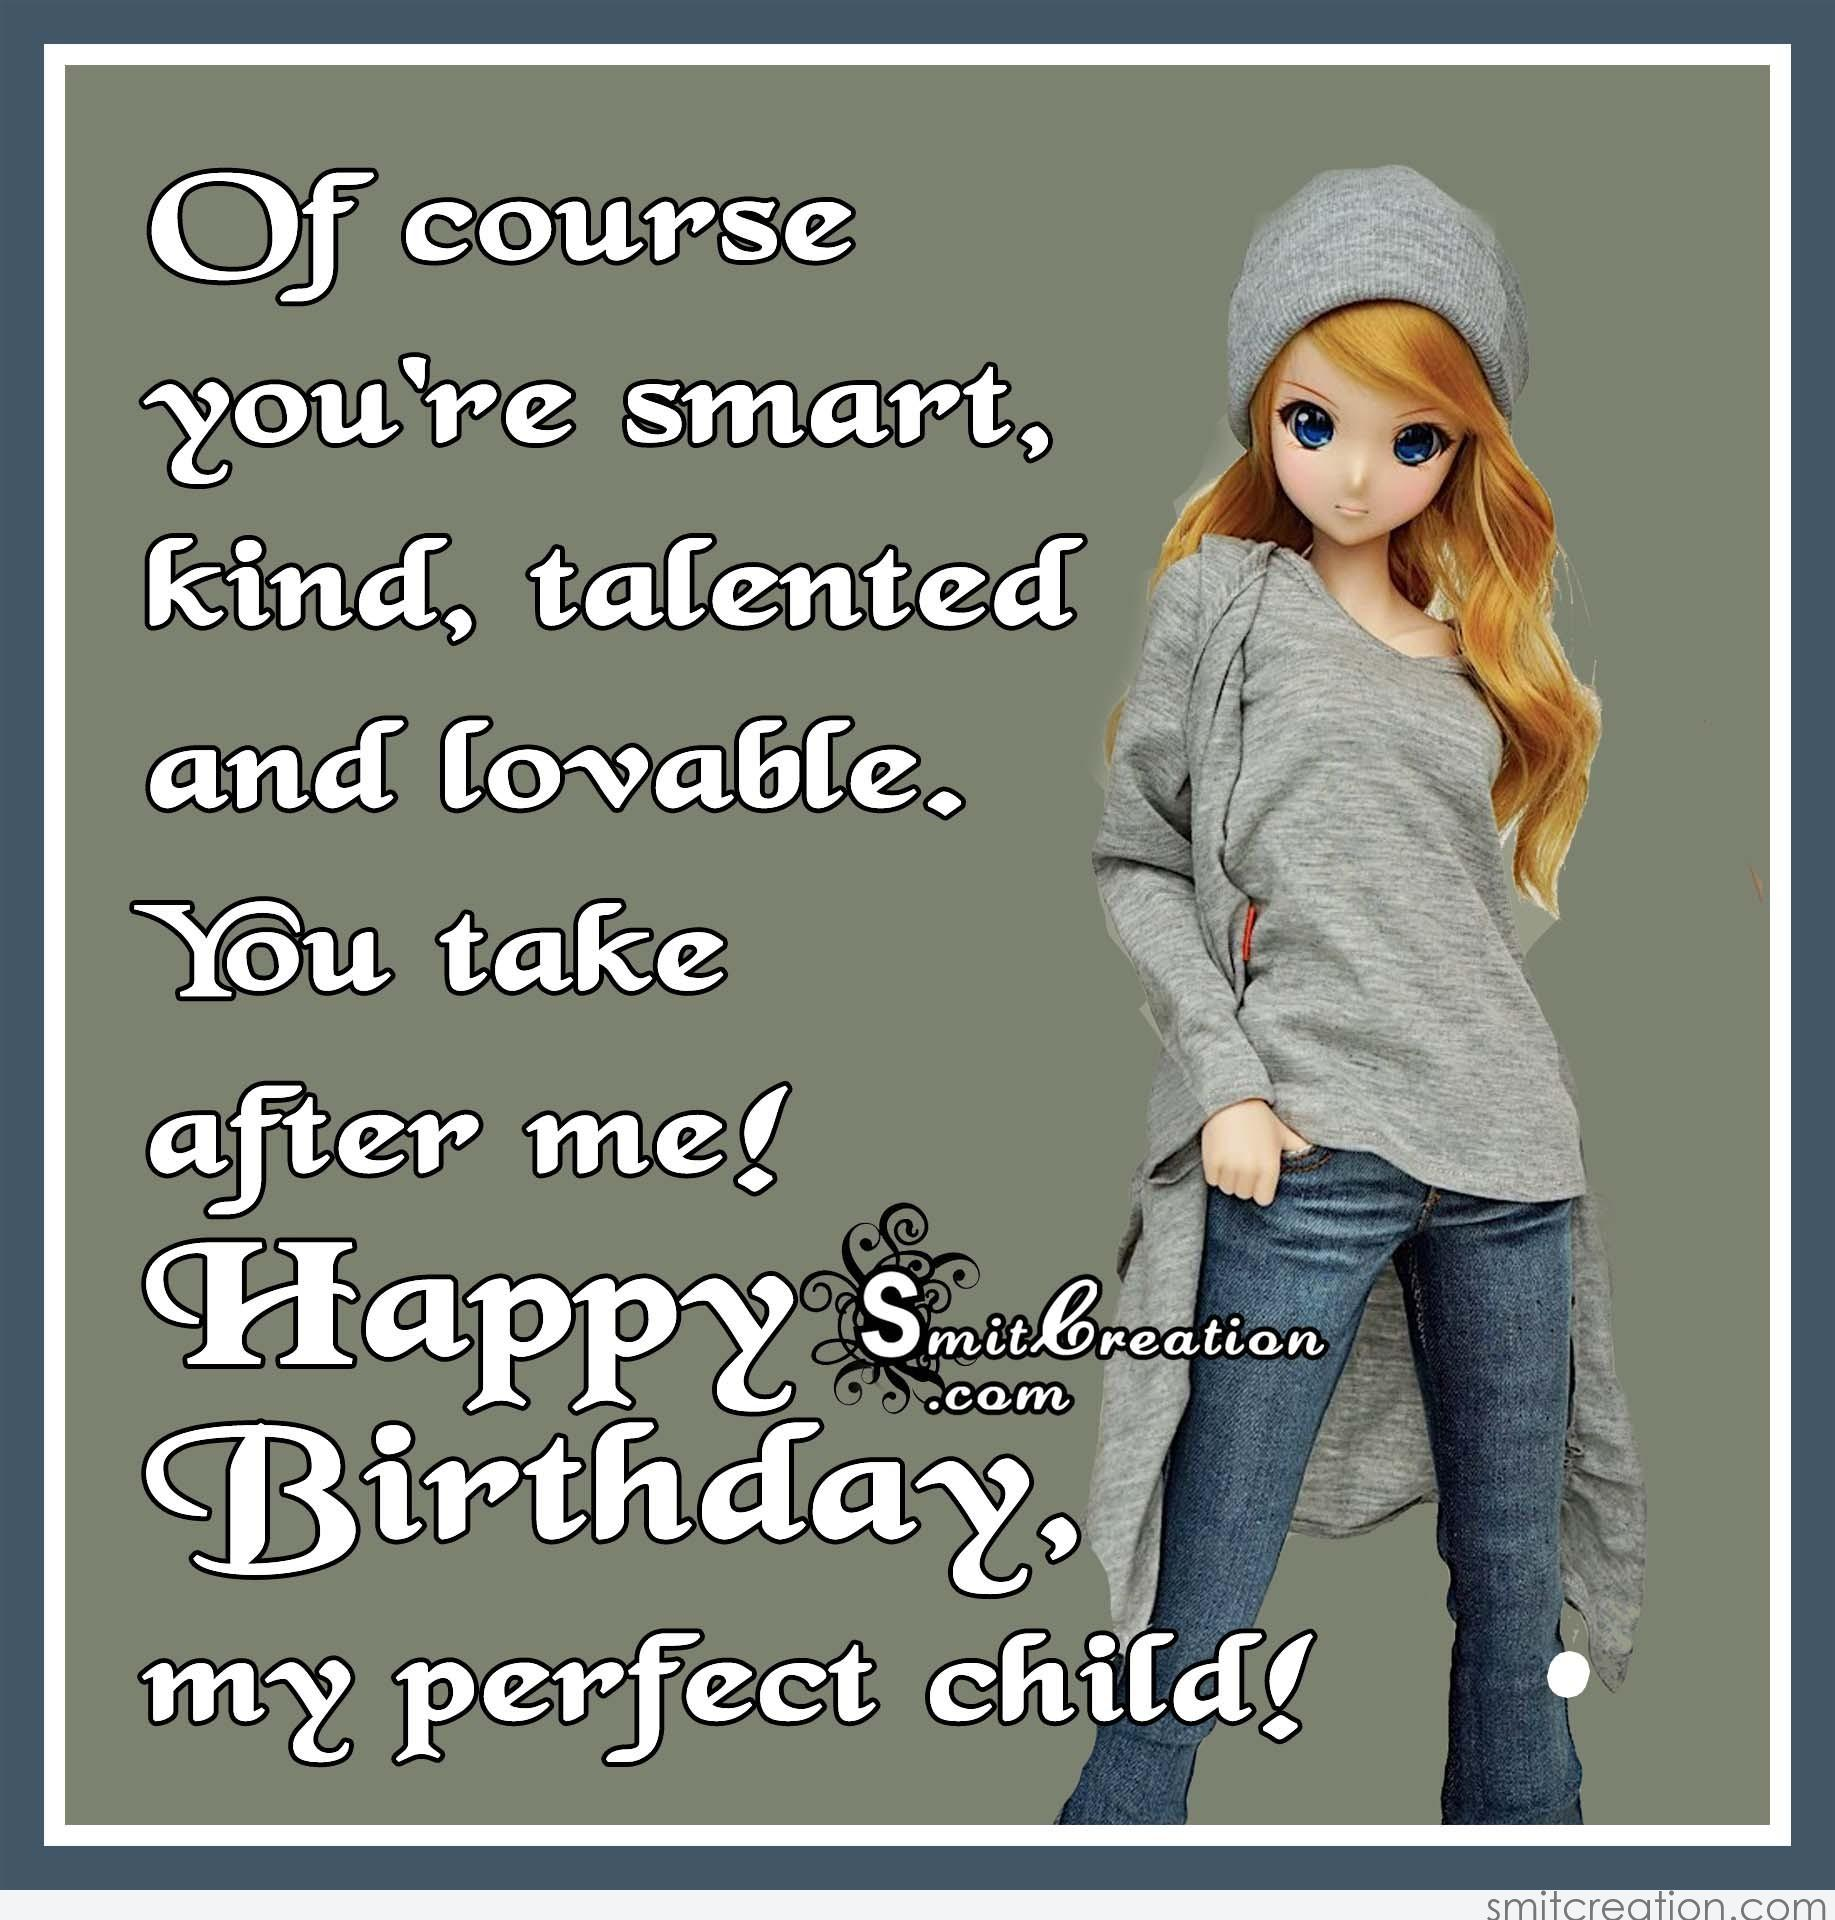 Birthday Wishes For Granddaughter Pictures And Graphics